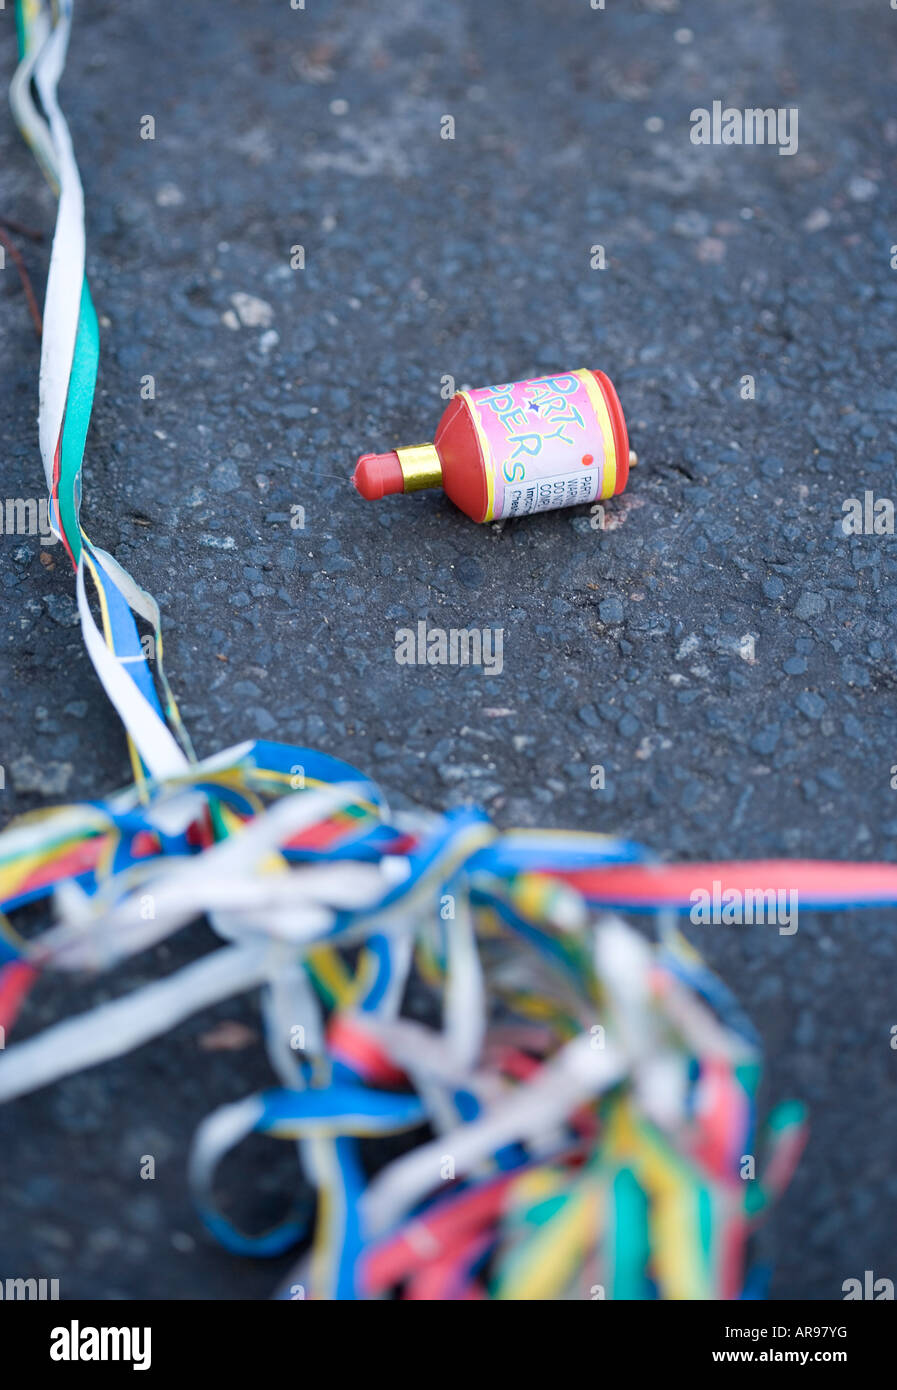 Used 'Party popper' in the road the day after a party - Stock Image